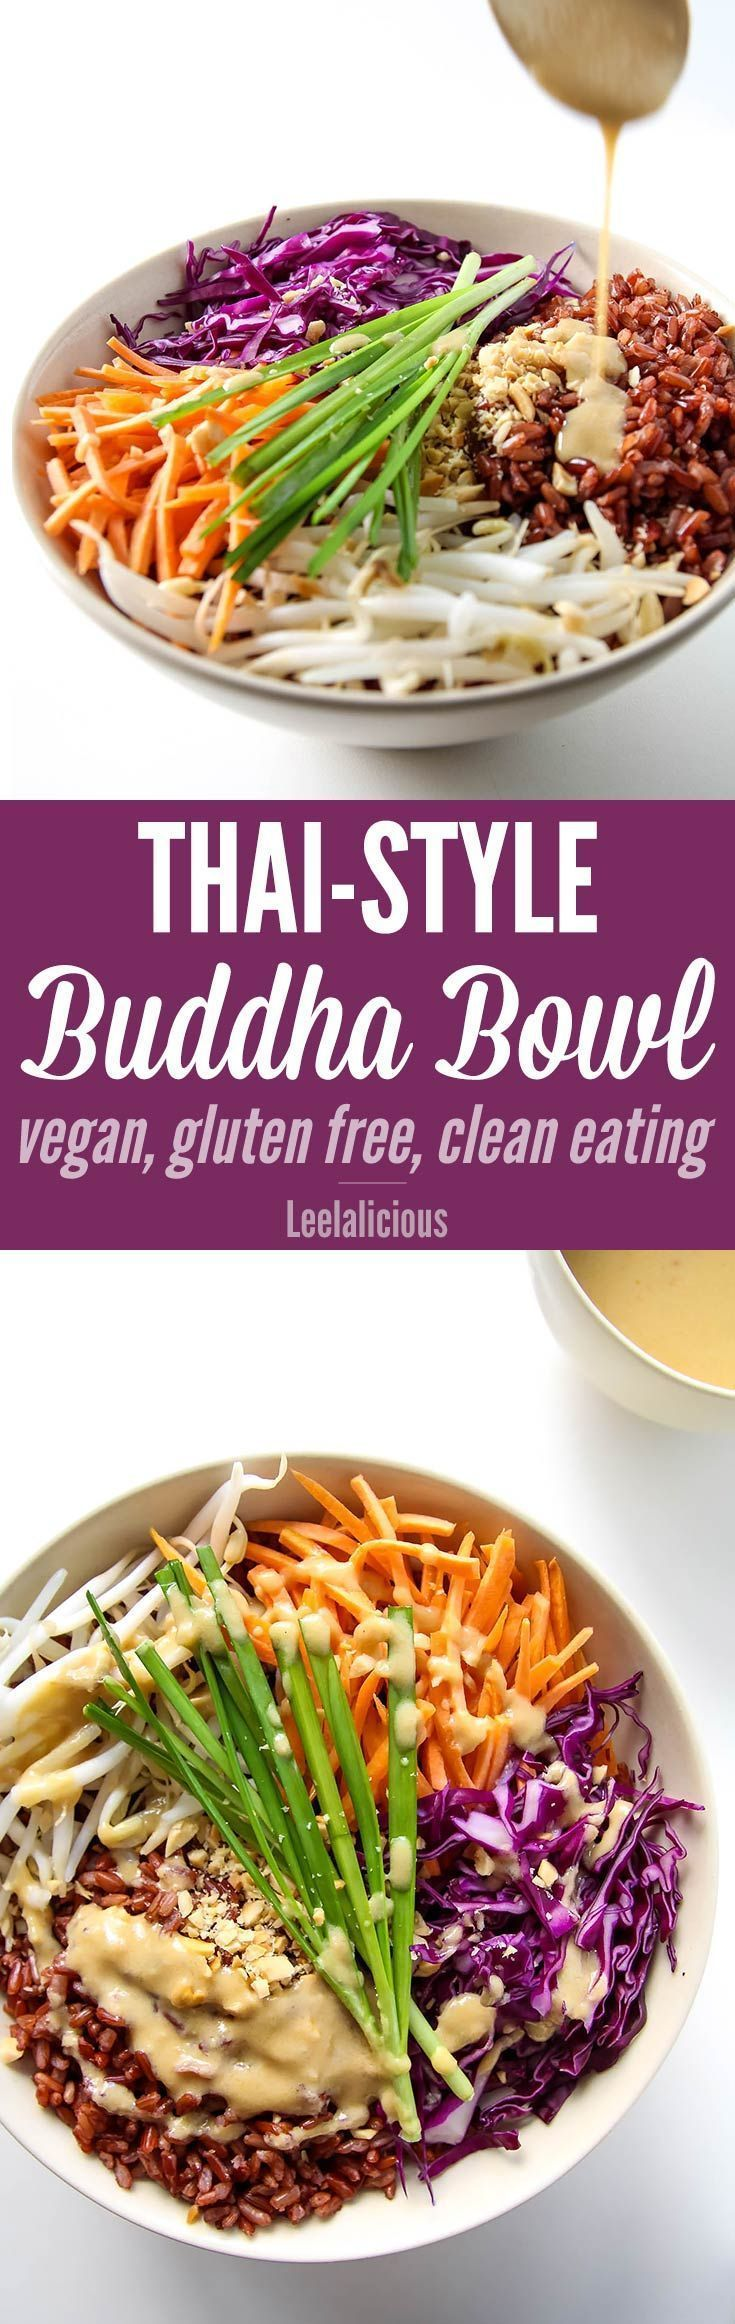 Thai Style Buddha Bowl with Peanut Sauce - this healthy recipe with brown rice is gluten free, vegan and clean eating.